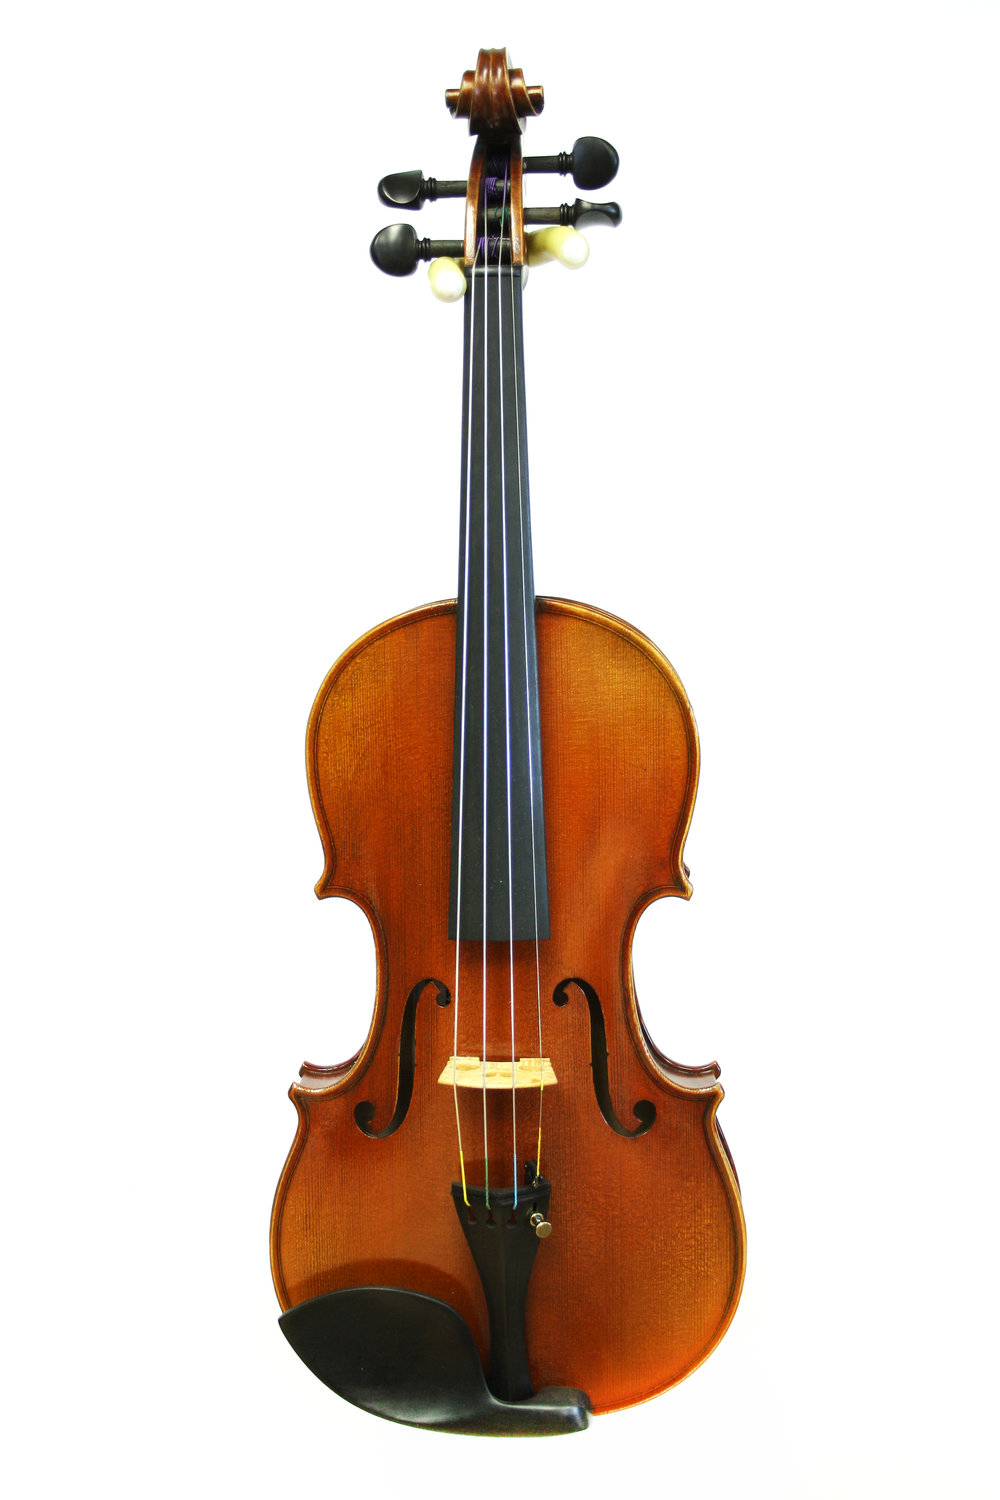 Cedar Strings CB Violin - $1299